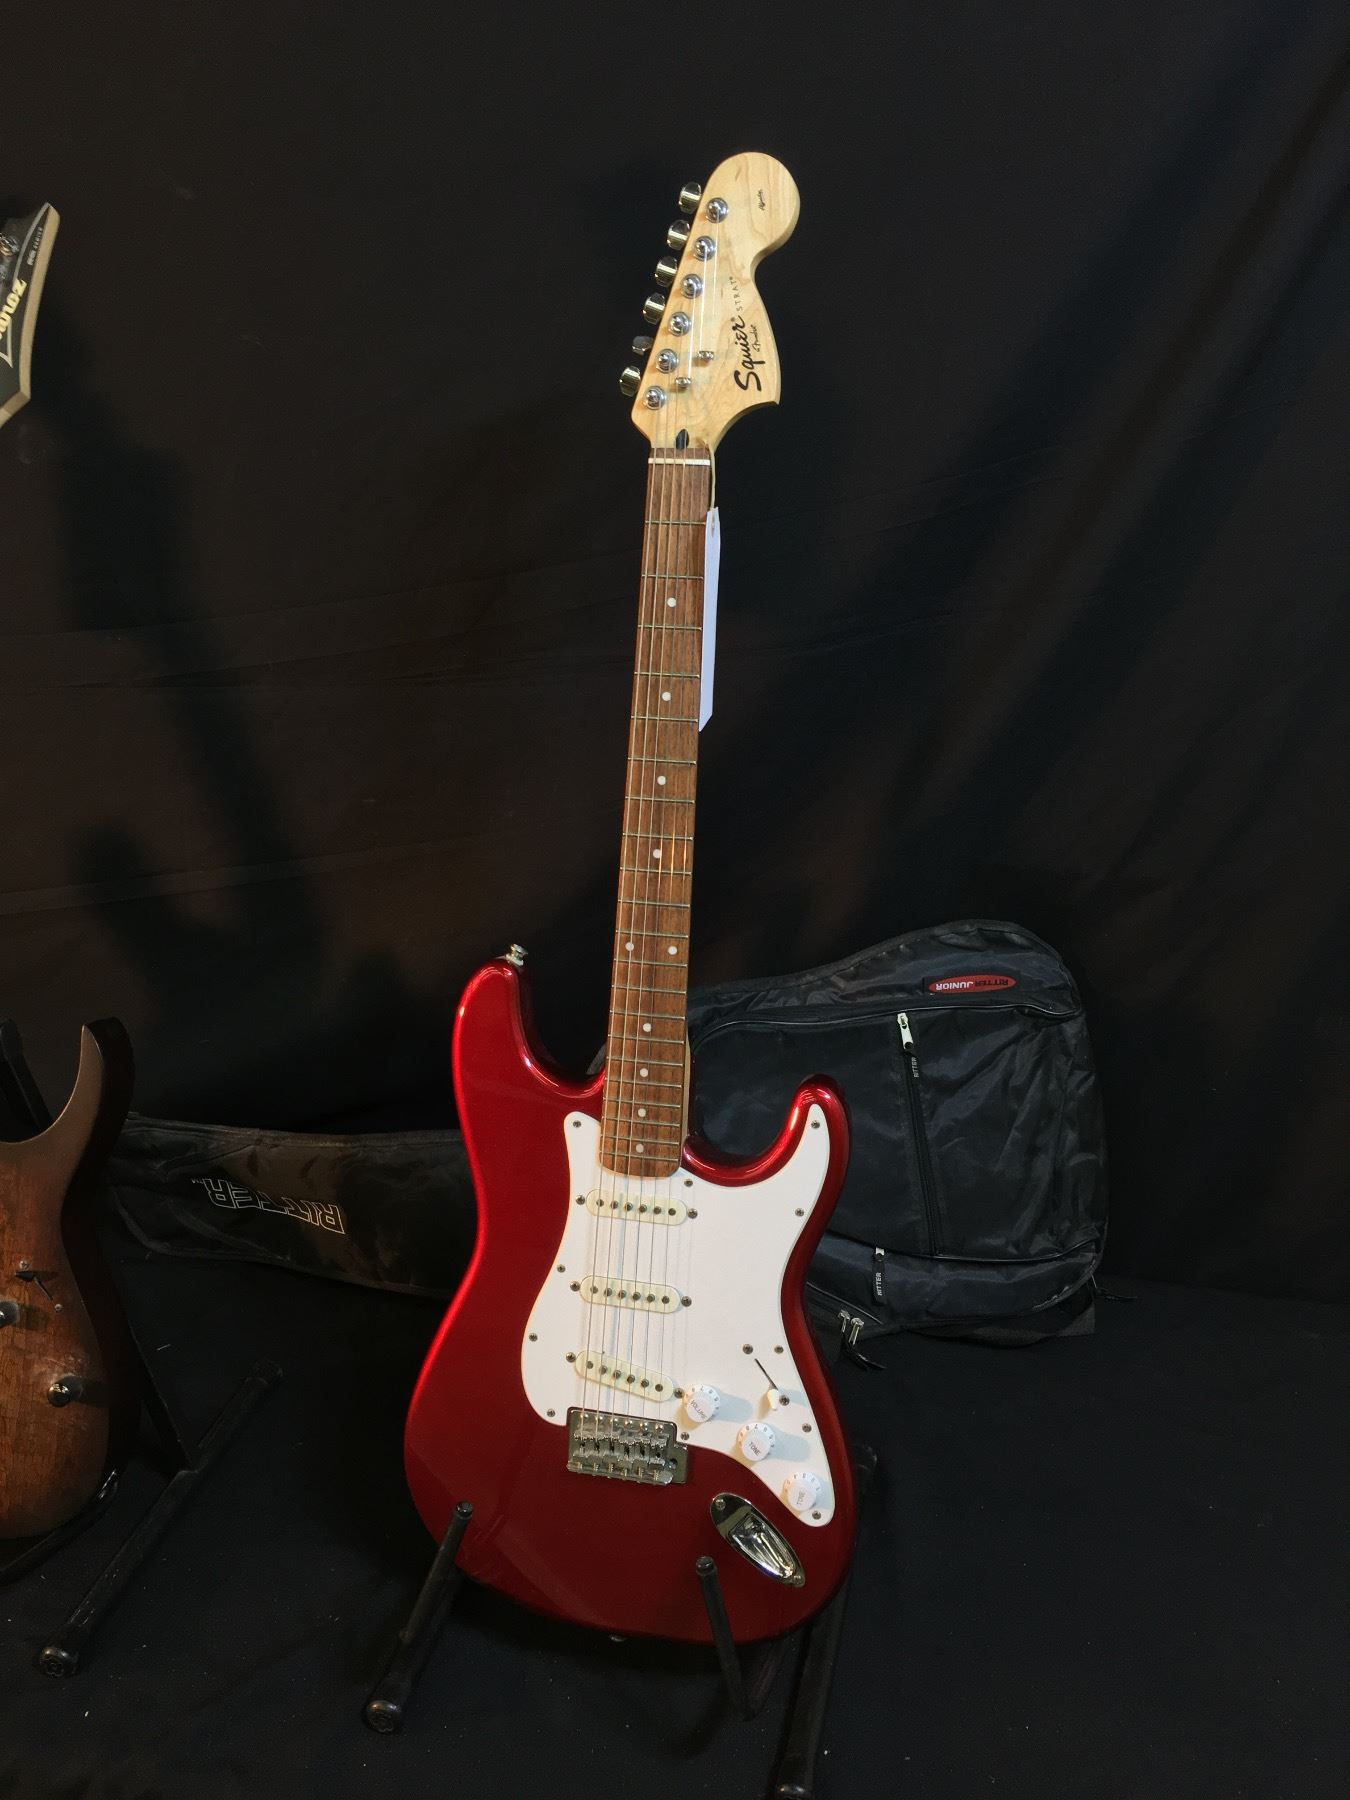 Lovely Bass Pickup Configurations Tiny 5 Way Import Switch Wiring Rectangular Installing A Remote Start Bulldog Car Alarms Young Ibanez Hsh SoftOne Humbucker One Volume 3 GUITARS: HEAVILY STICKERED STRAT STYLE GUITAR, SQUIER STRAT, AND ..